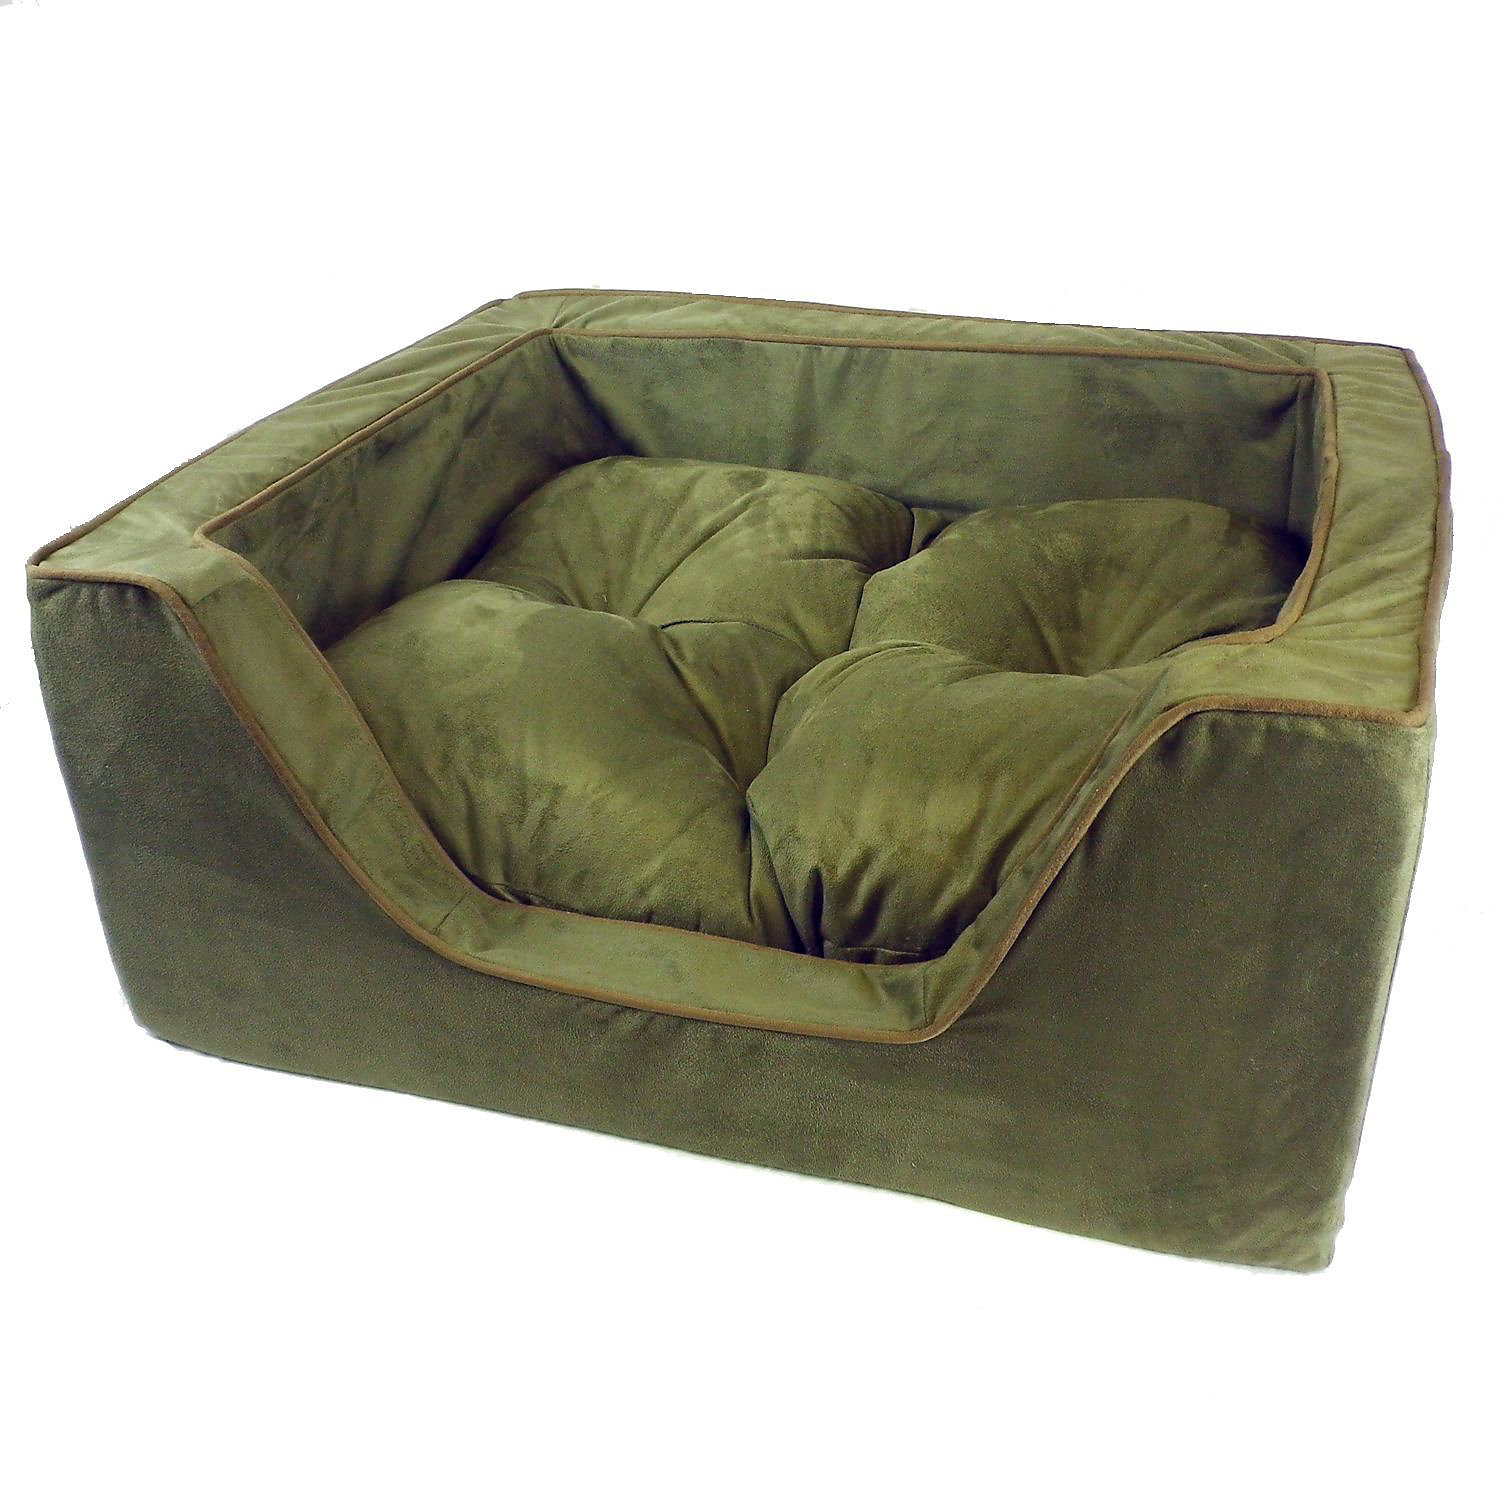 Snoozer Luxury Square Bed in Olive with Coffee Cording 27 L X 23 W X 12 H Large Green  Brown